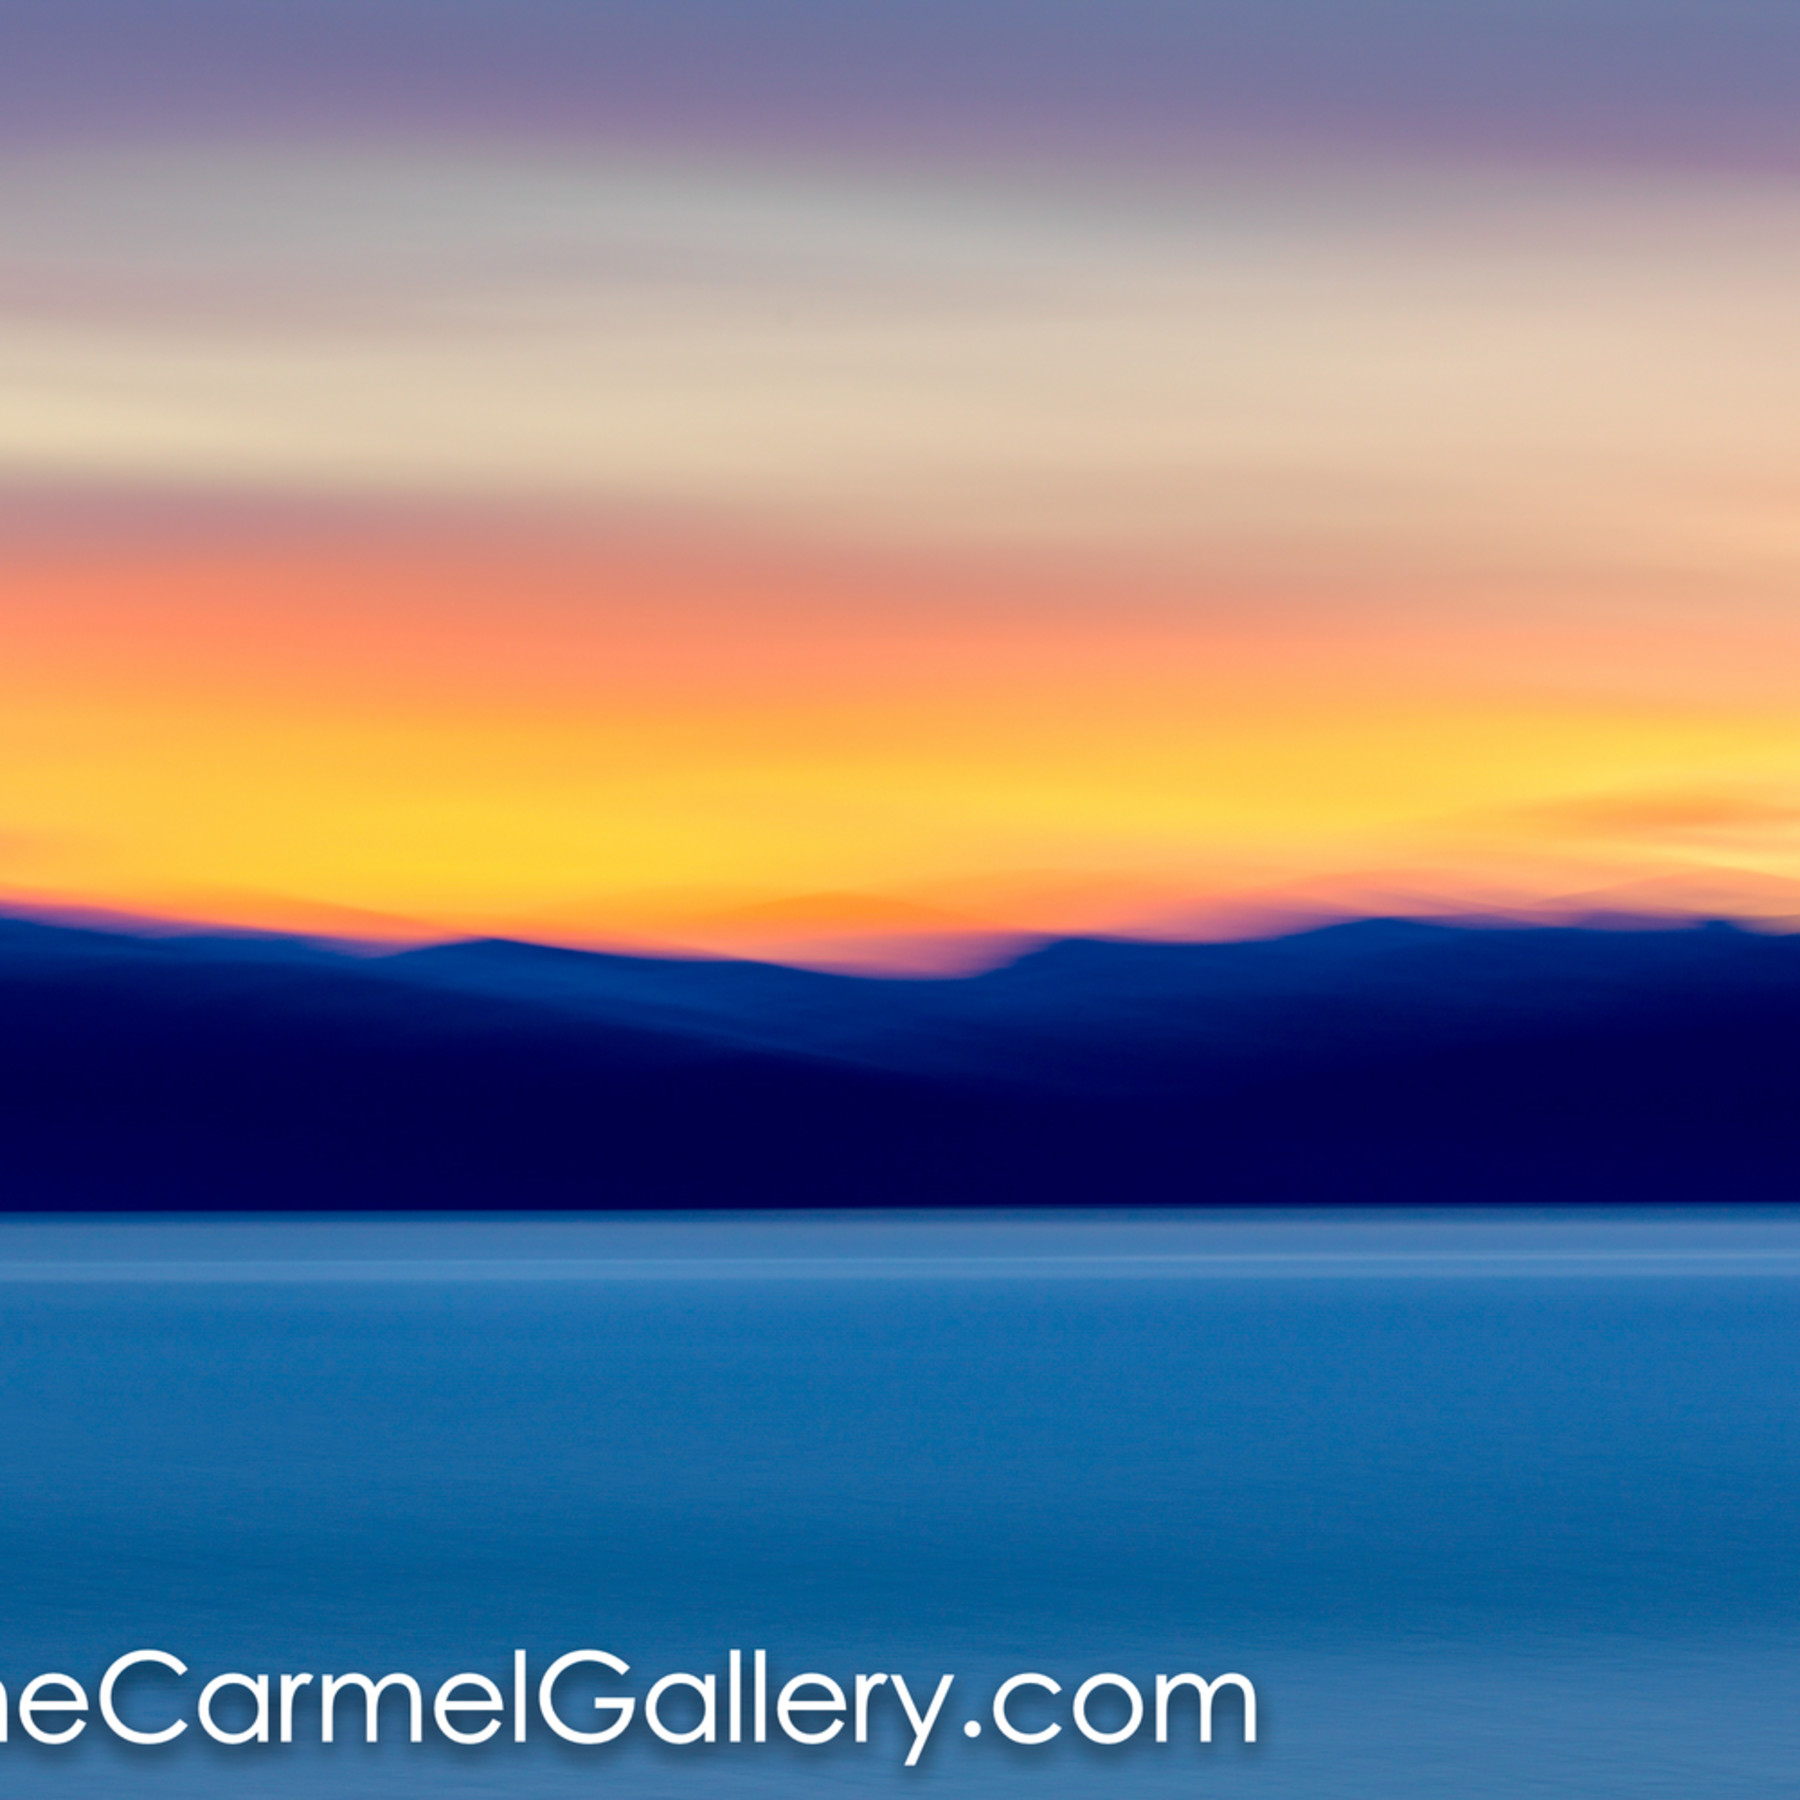 Lake tahoe sunset i qssmqk